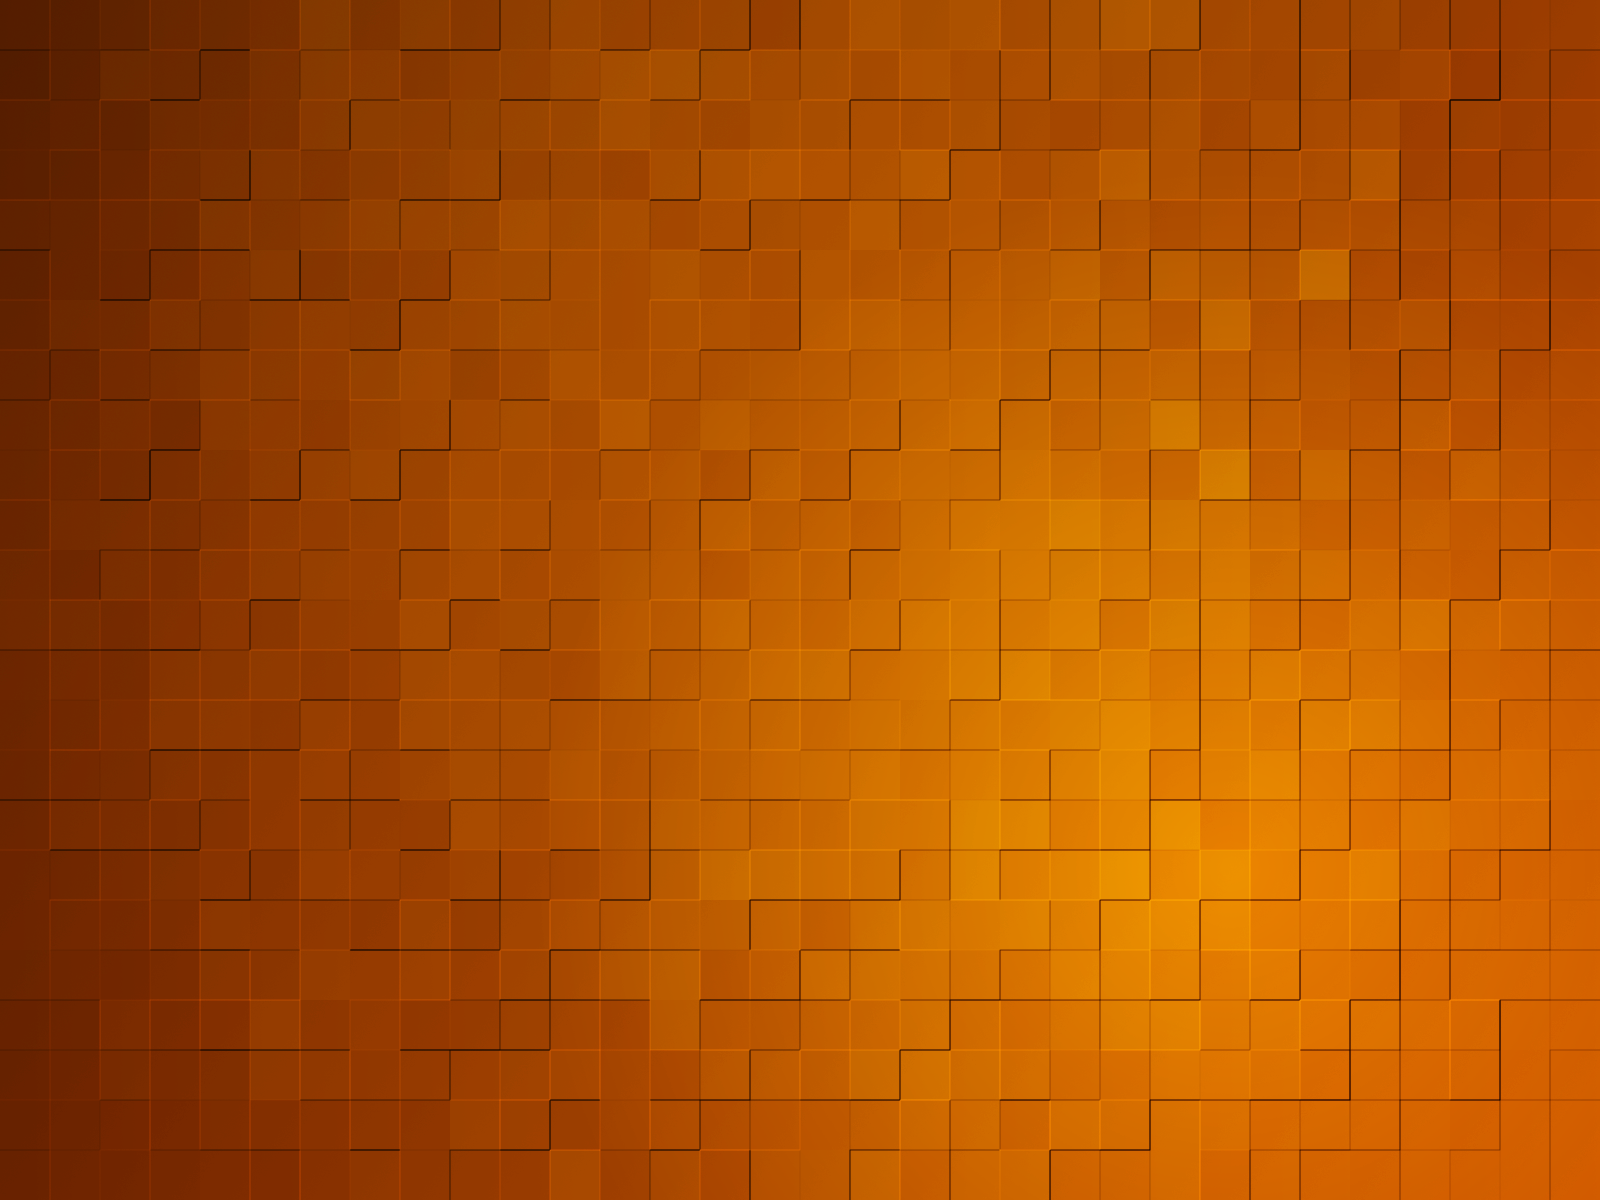 Orange And Grey Wallpaper For Walls 1600x1200